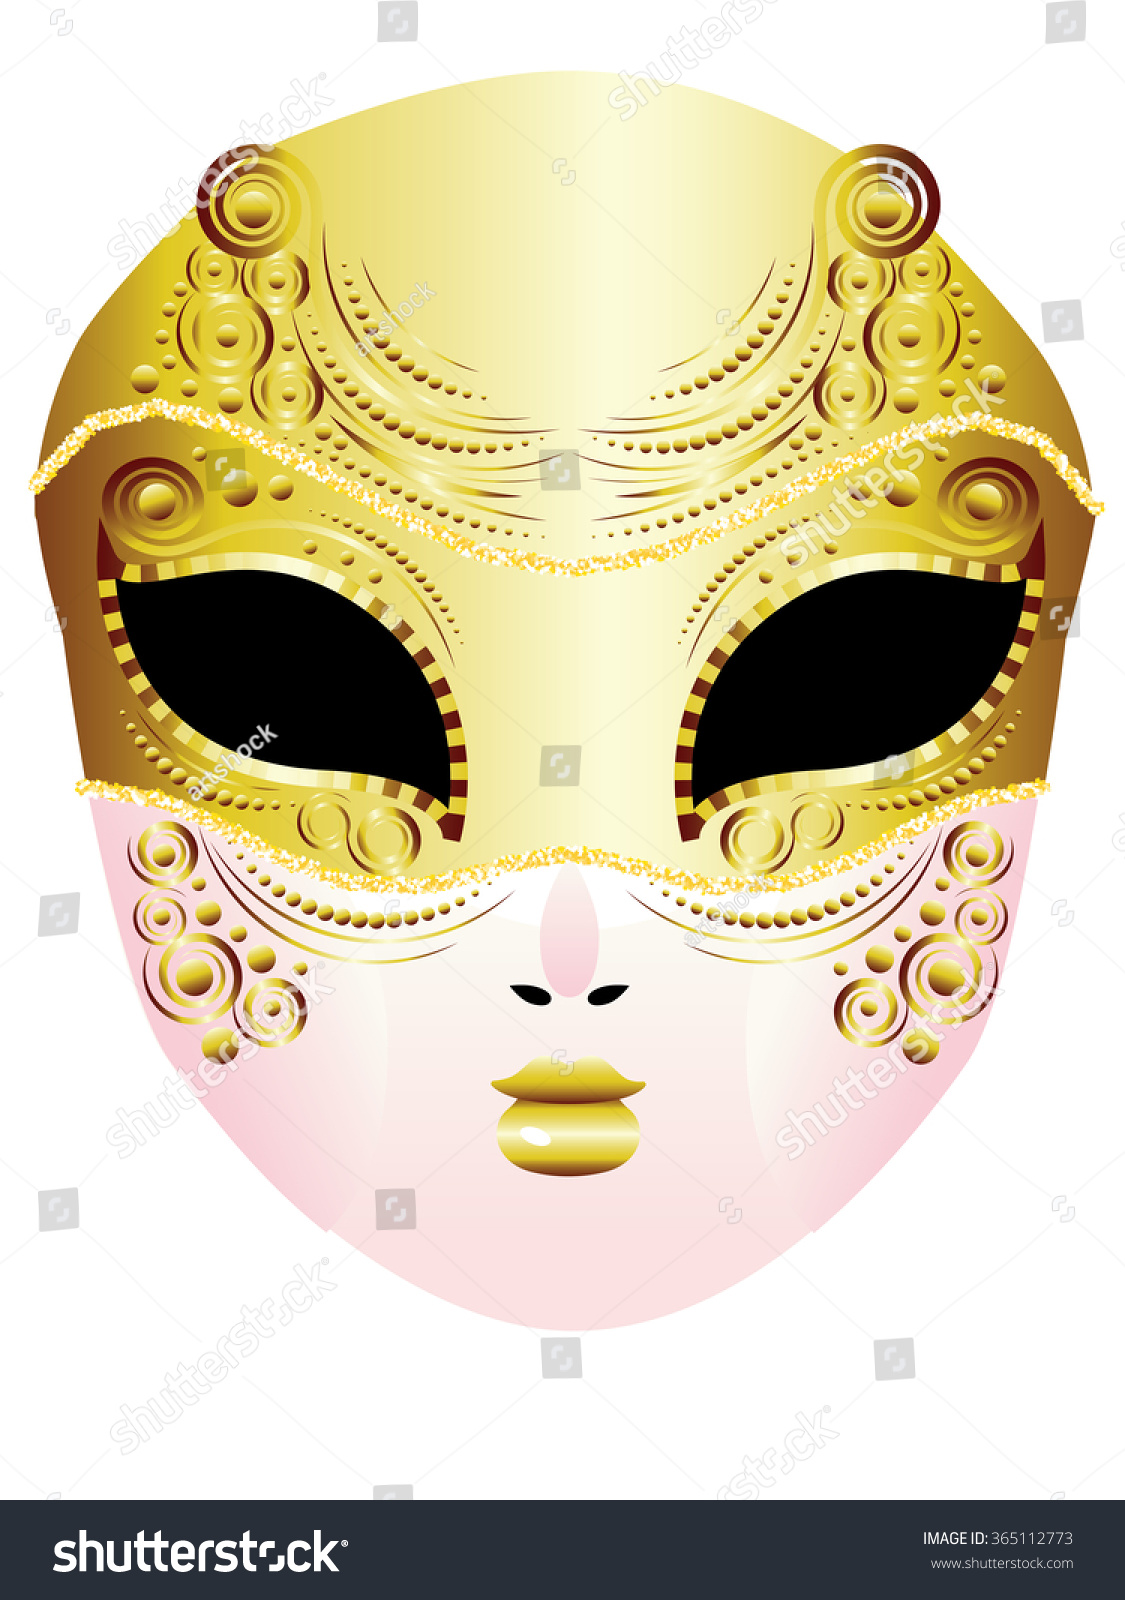 Dorable Masquerade Wall Decorations Inspiration - The Wall Art ...